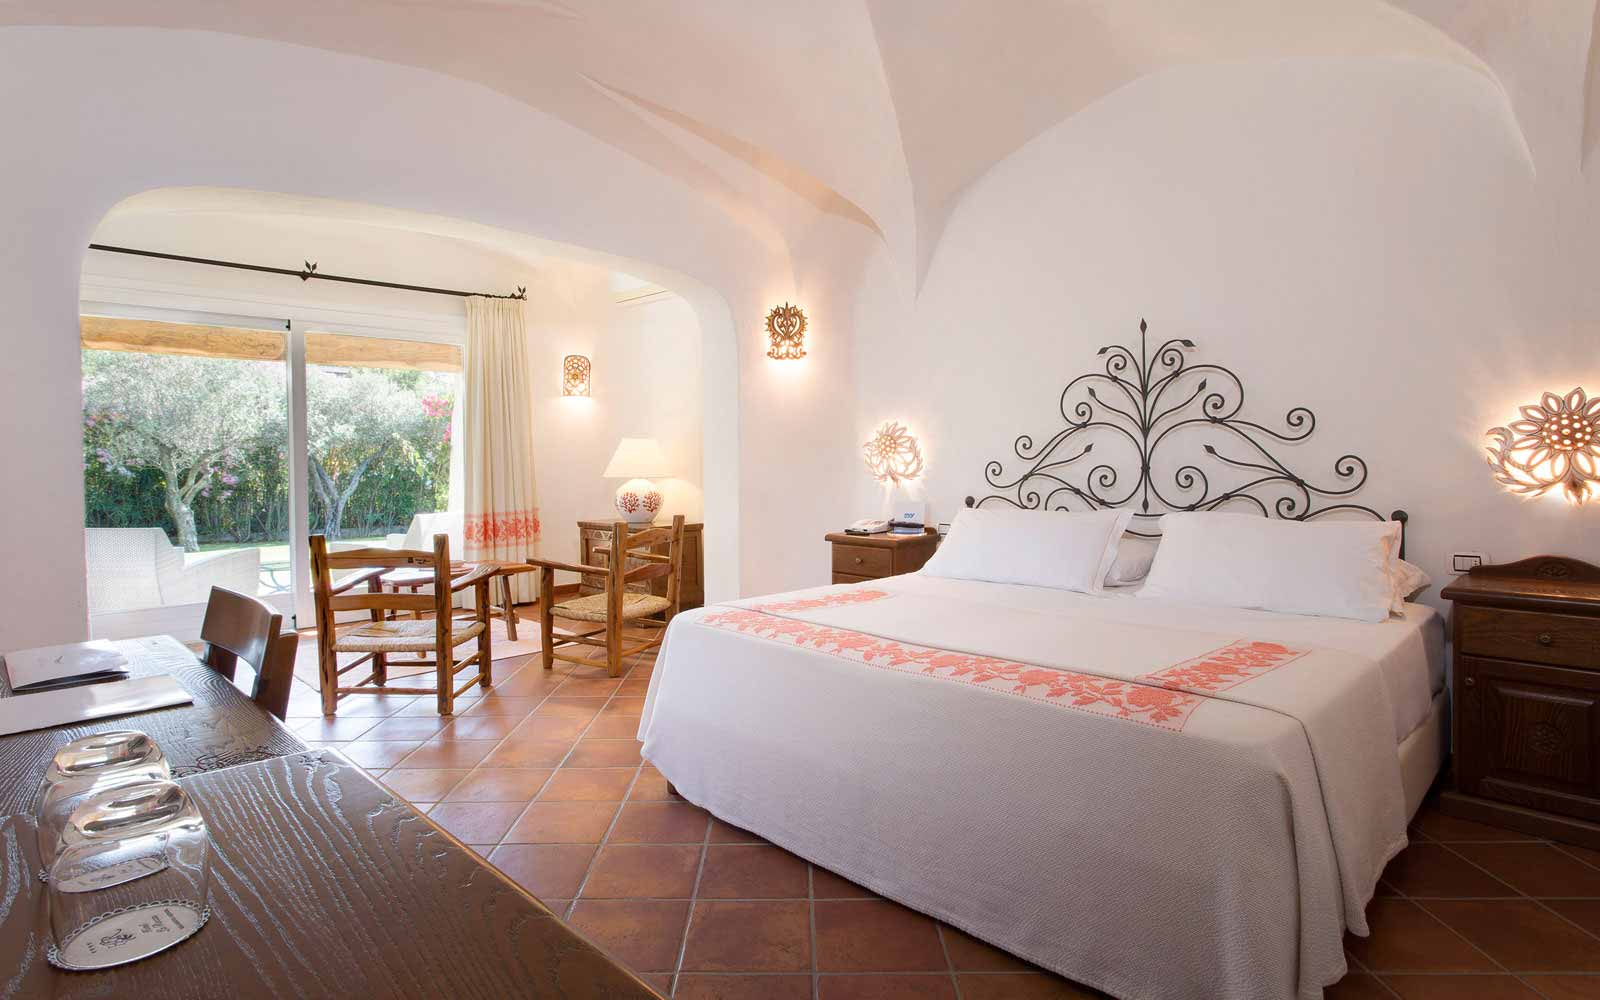 Bedroom at Hotel La Rocca Resort & Spa